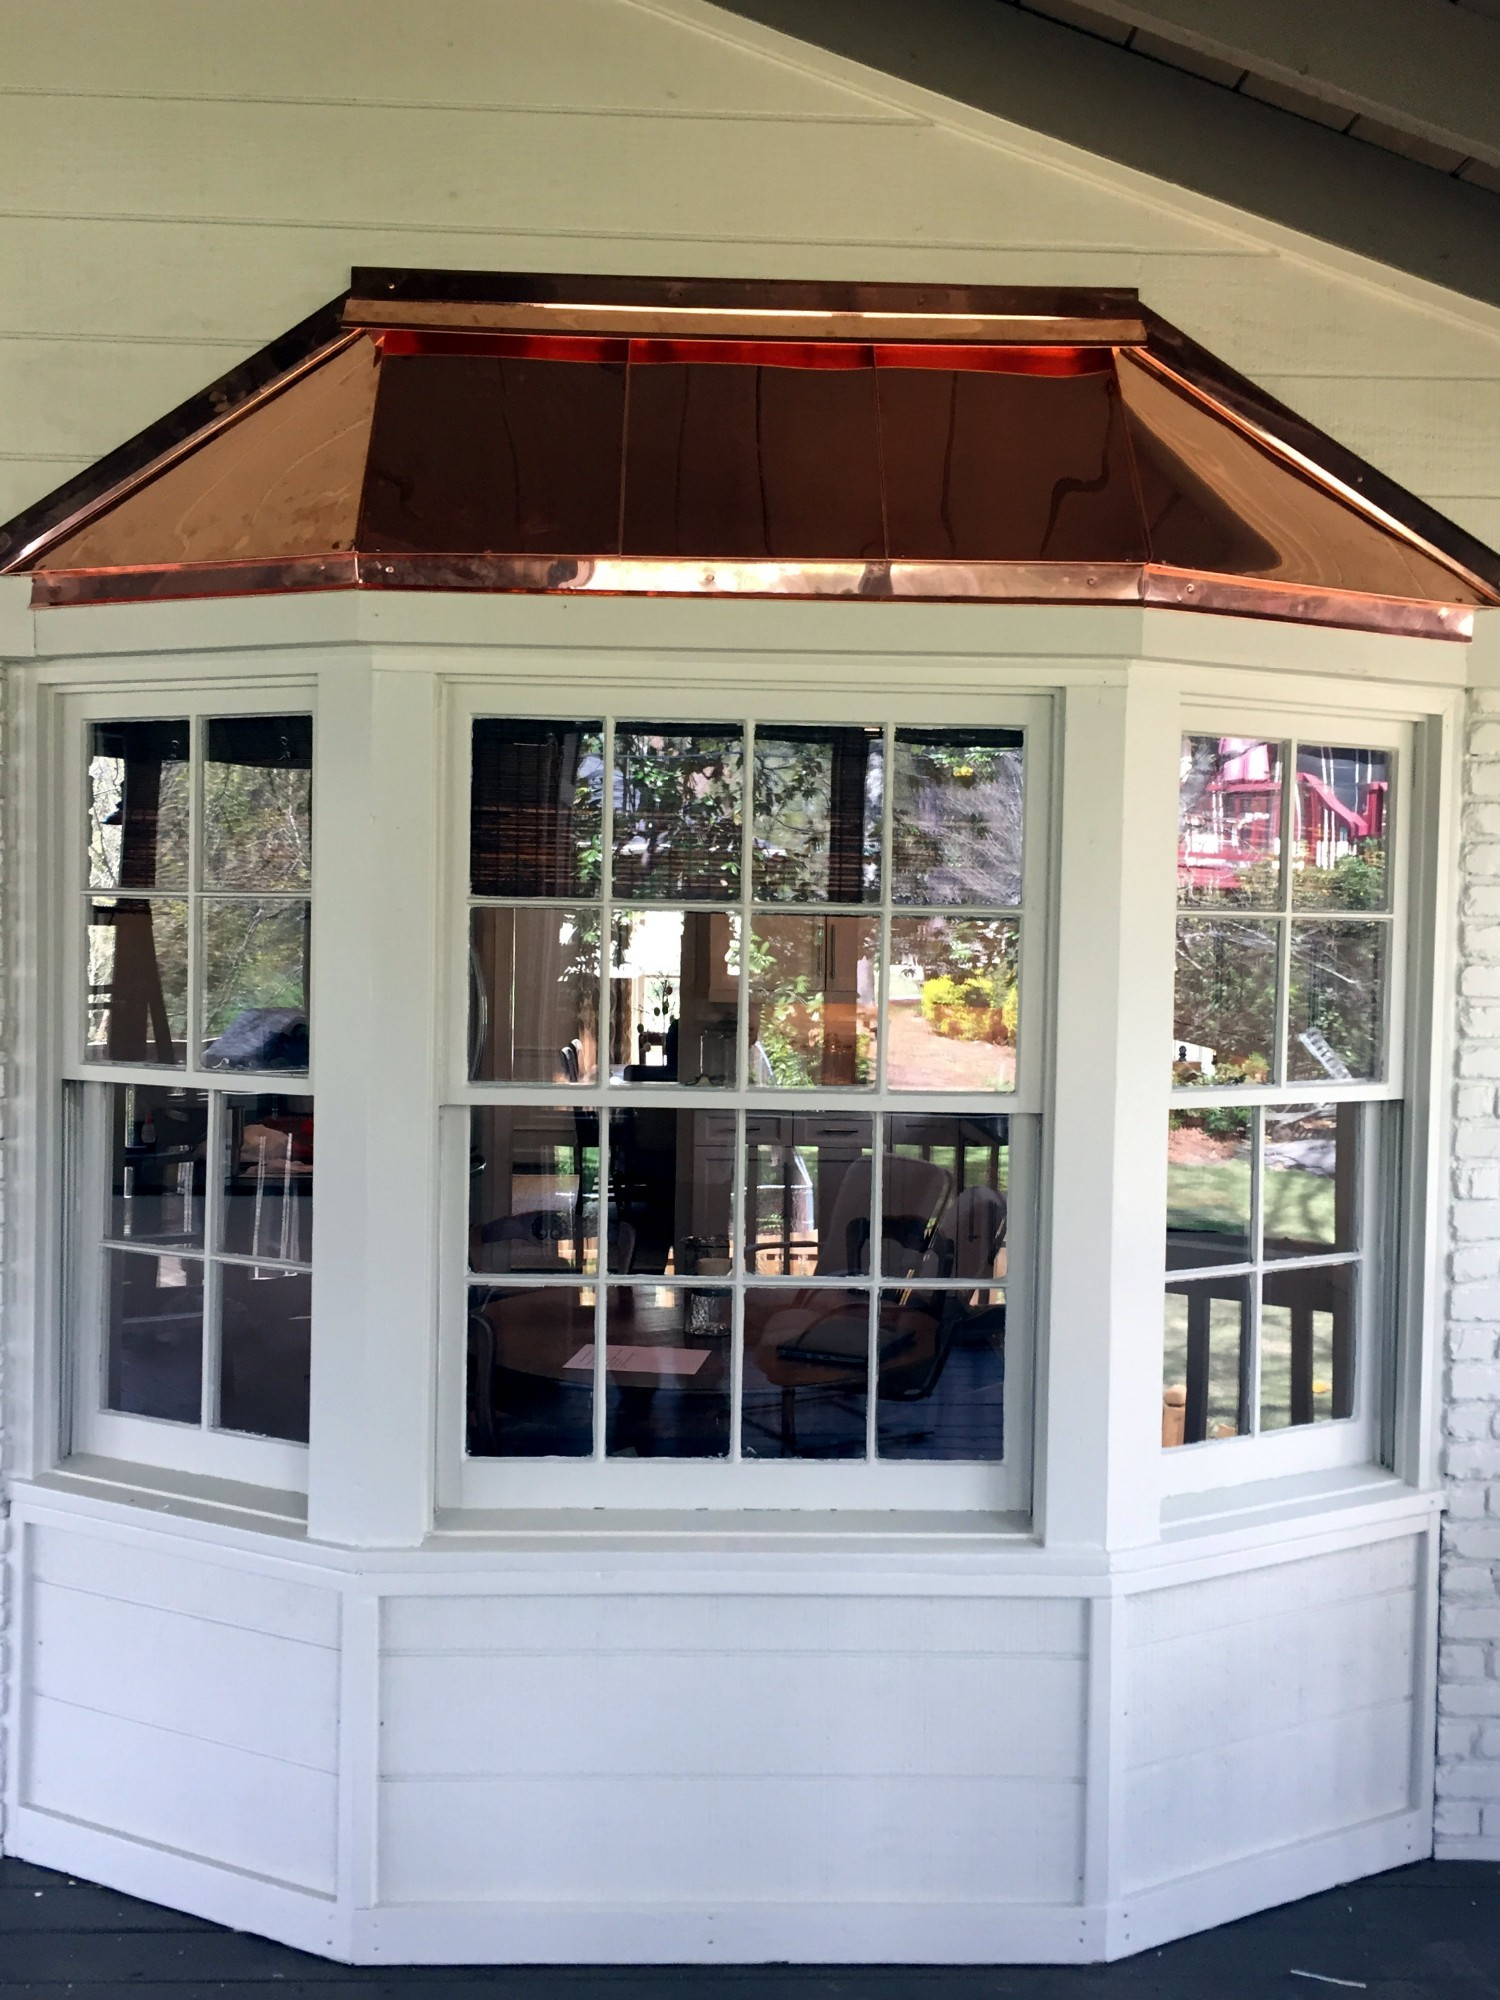 Copper bay window top we installed in Vestavia AL